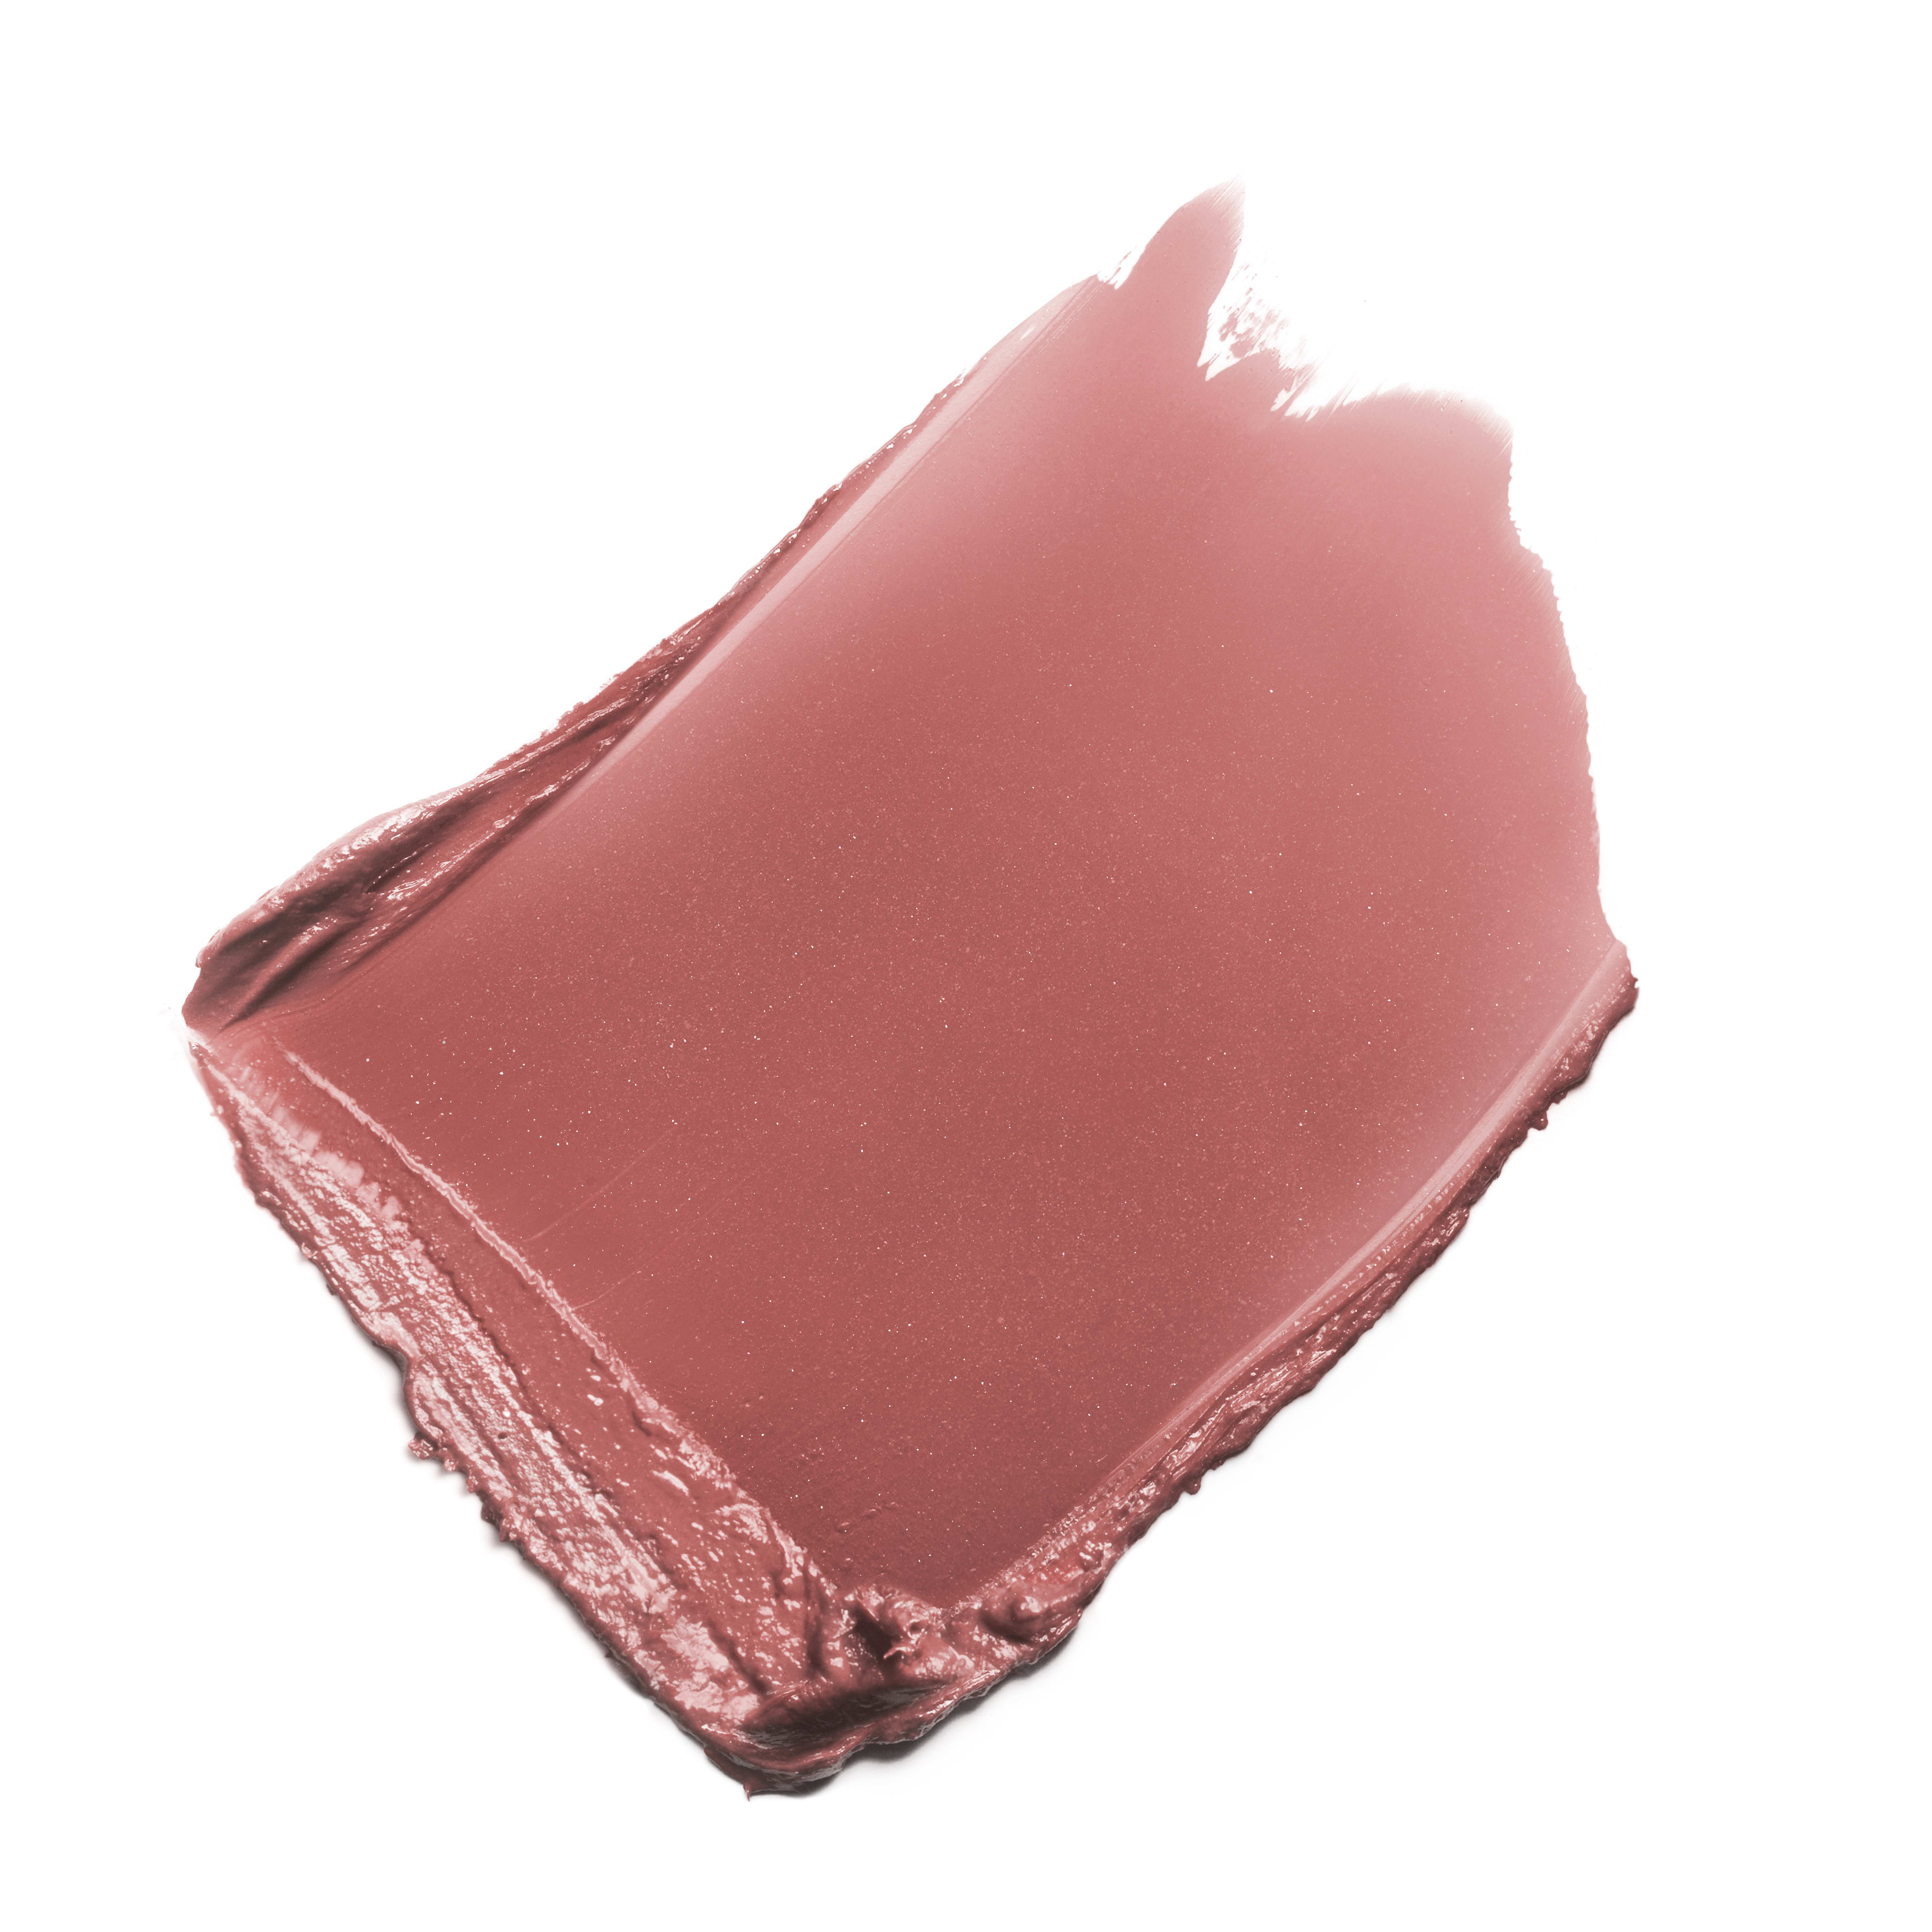 ROUGE COCO - makeup - 0.12OZ. - Basic texture view